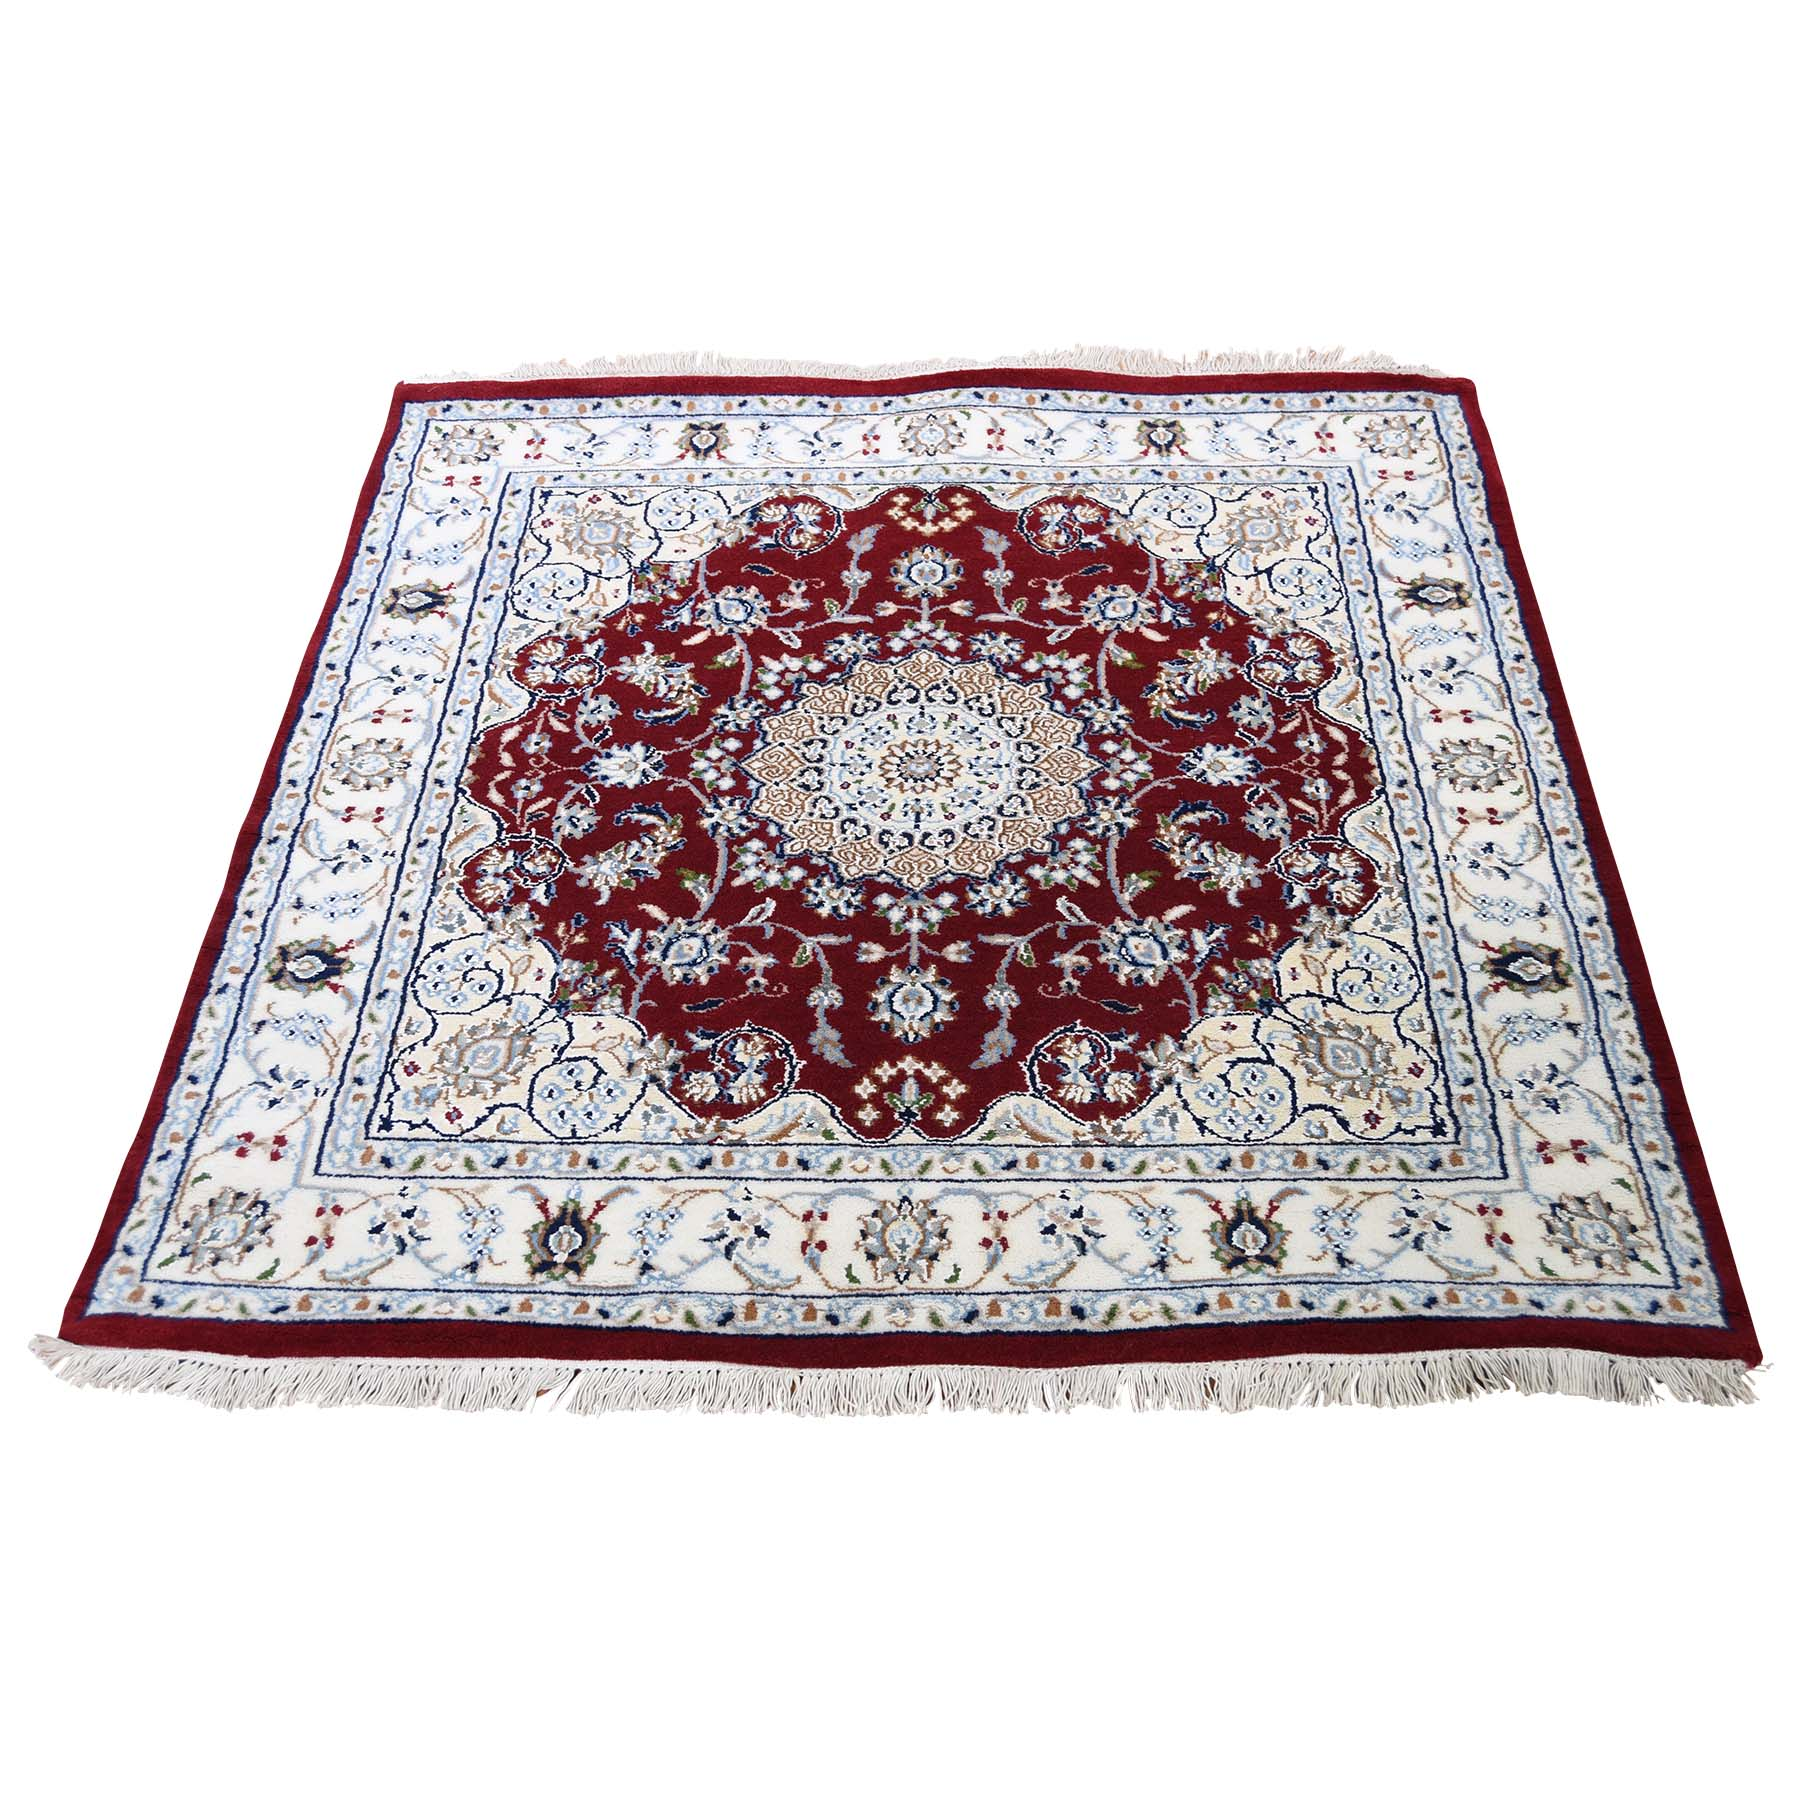 Pirniakan Collection Hand Knotted Red Rug No: 186772